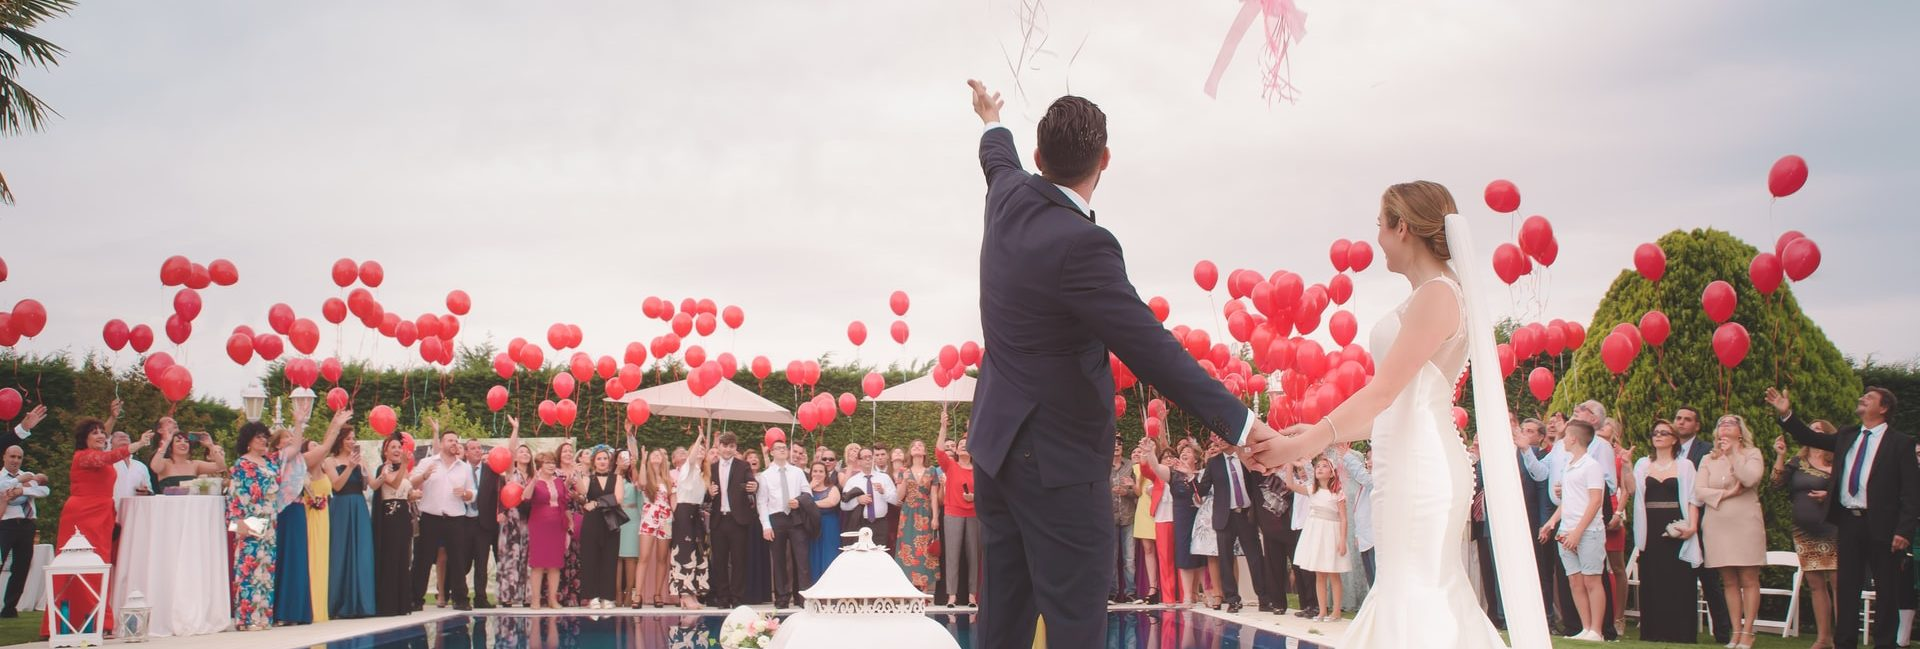 How to Ensure That Your Wedding Is One to Remember